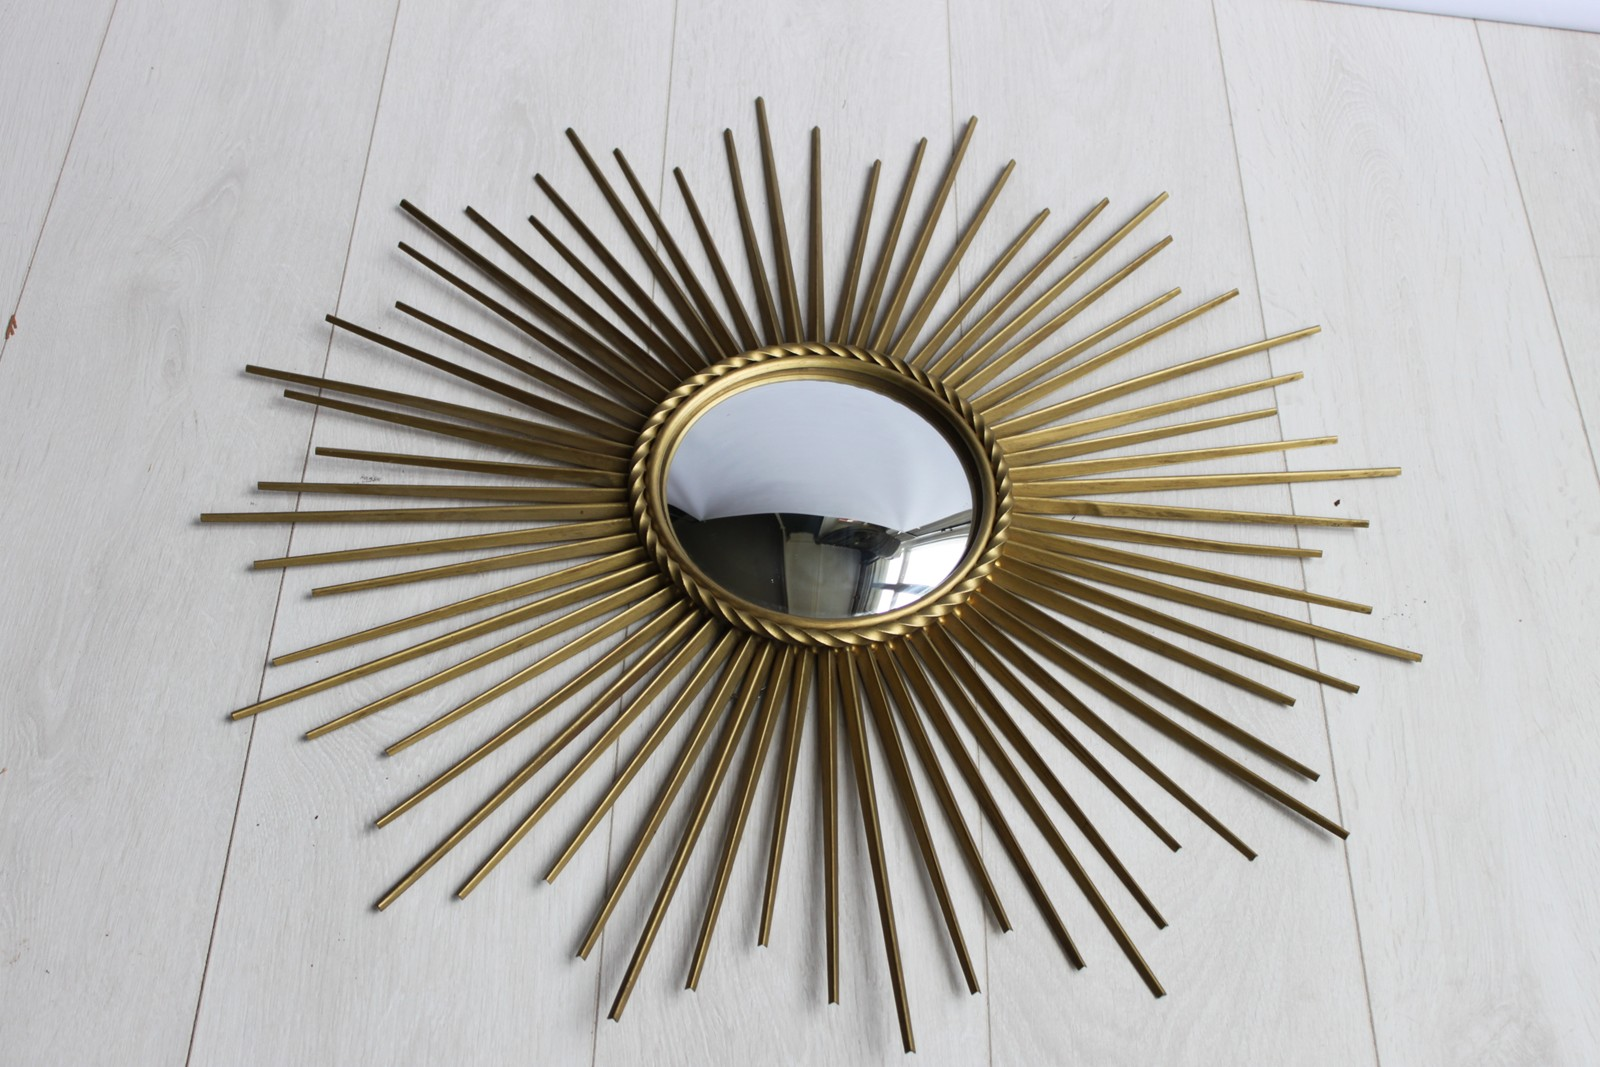 Chaty vallauris sunburst mirror the hoarde for Chaty vallauris miroir